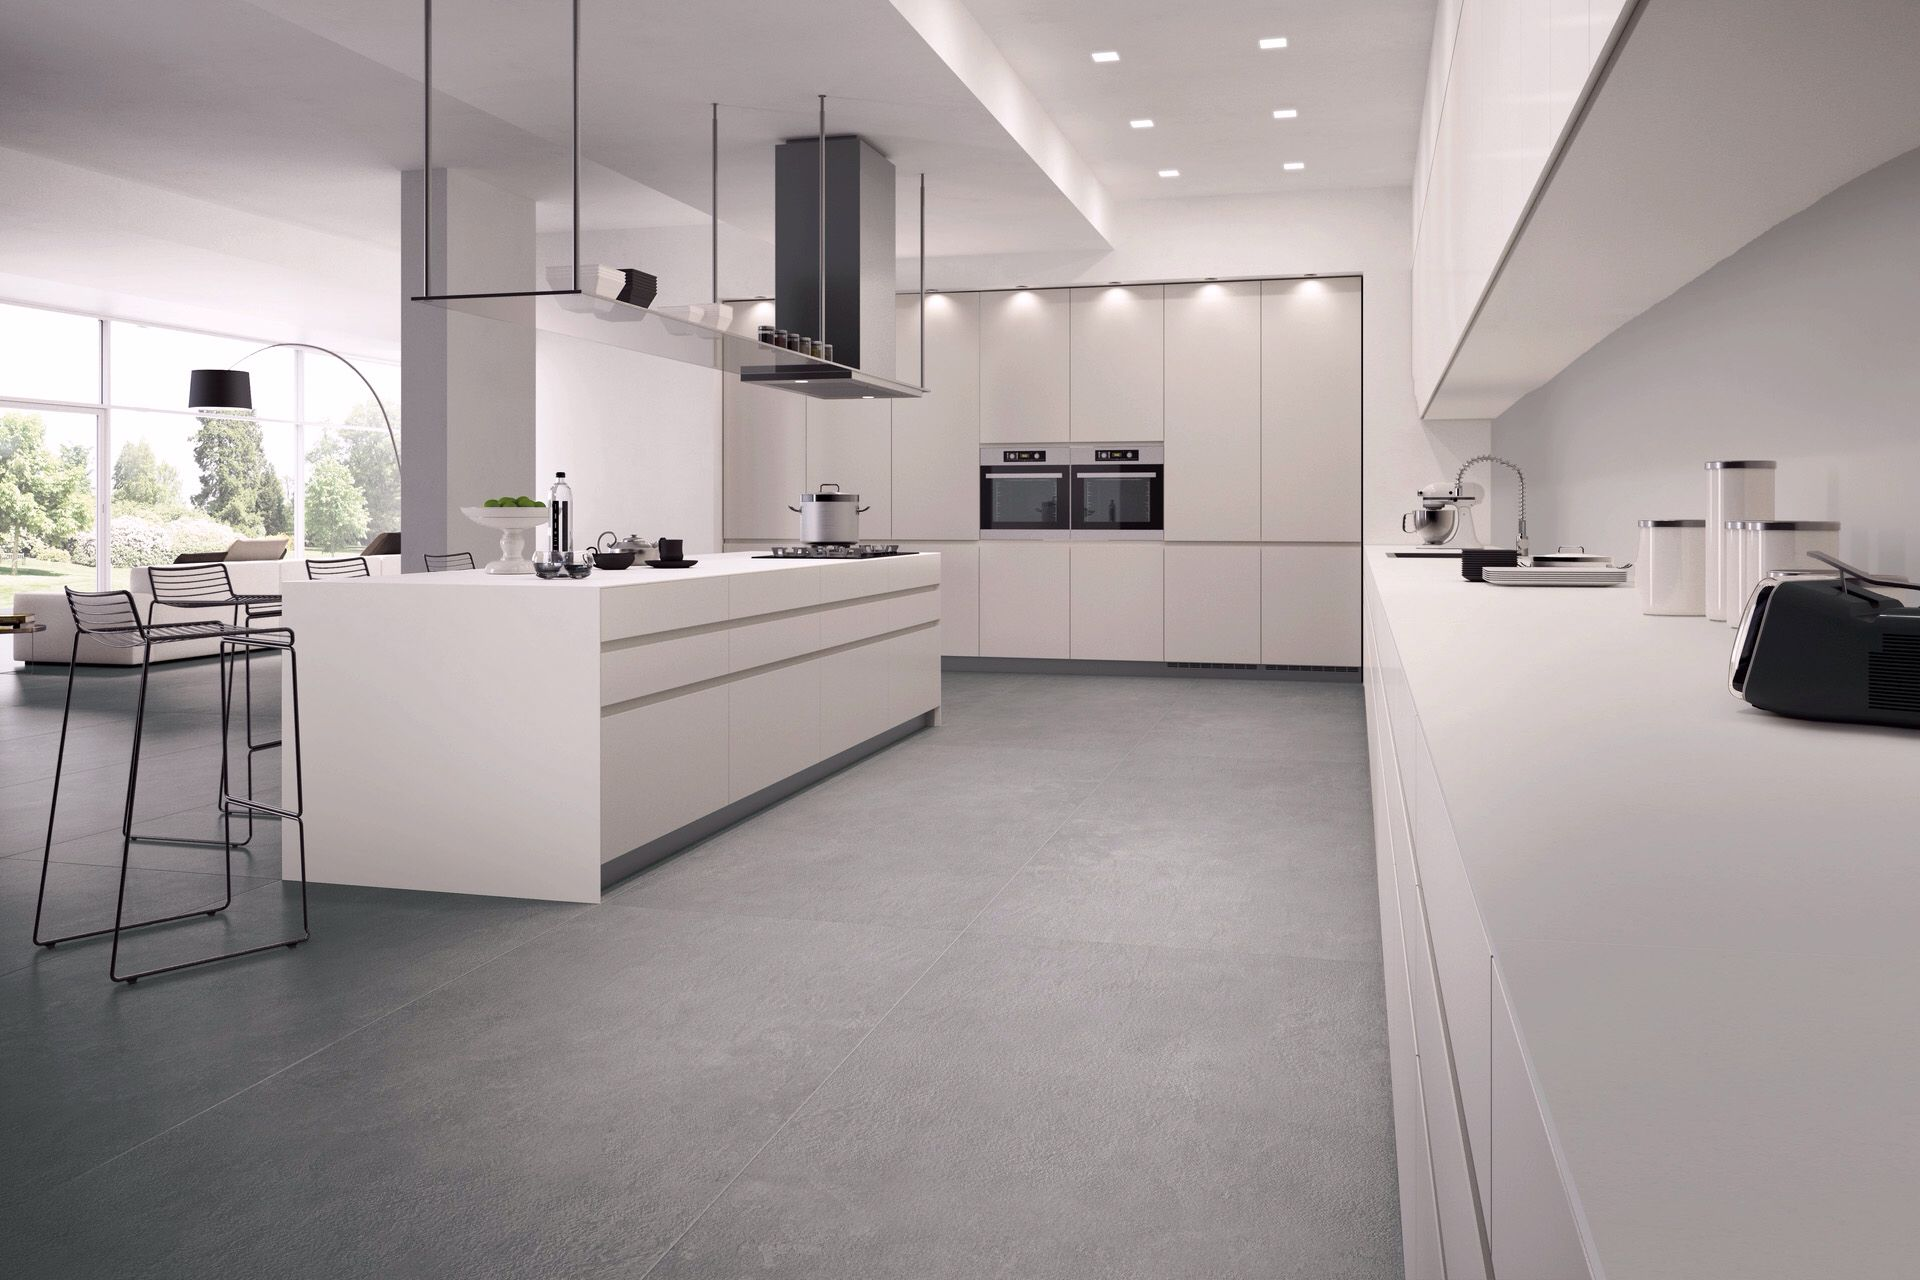 Euro west mercury maxim porcelain basement pinterest euro porcelain stone tile marble floor tile mosaics and granite tiles for indoor and outdoor use and belonging to fiandre best collection dailygadgetfo Choice Image